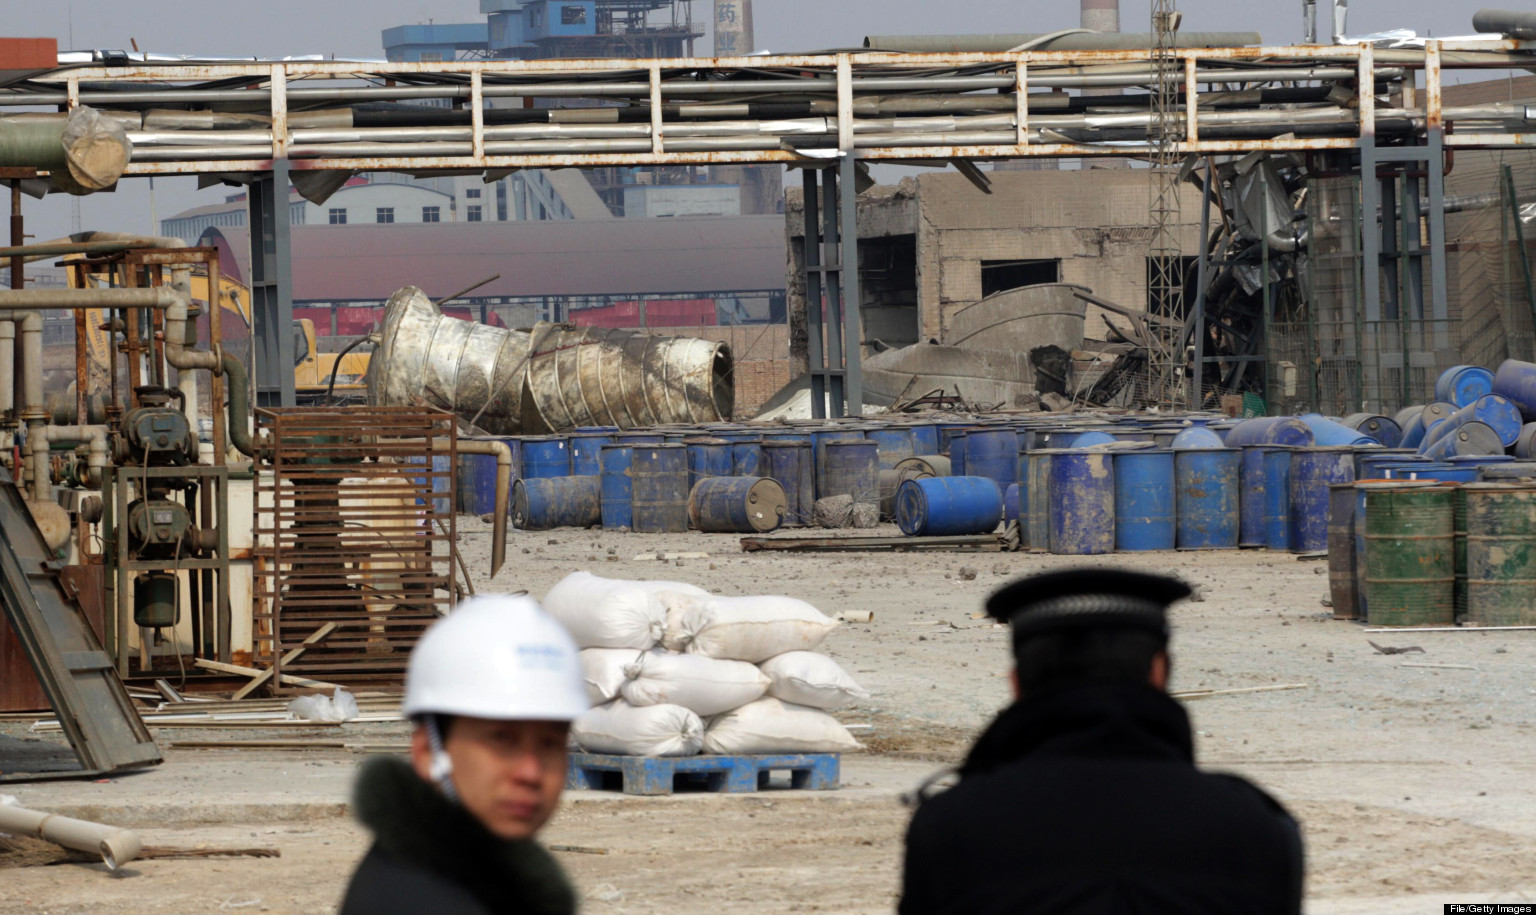 5 Dead, 20 Missing In China Factory Explosion